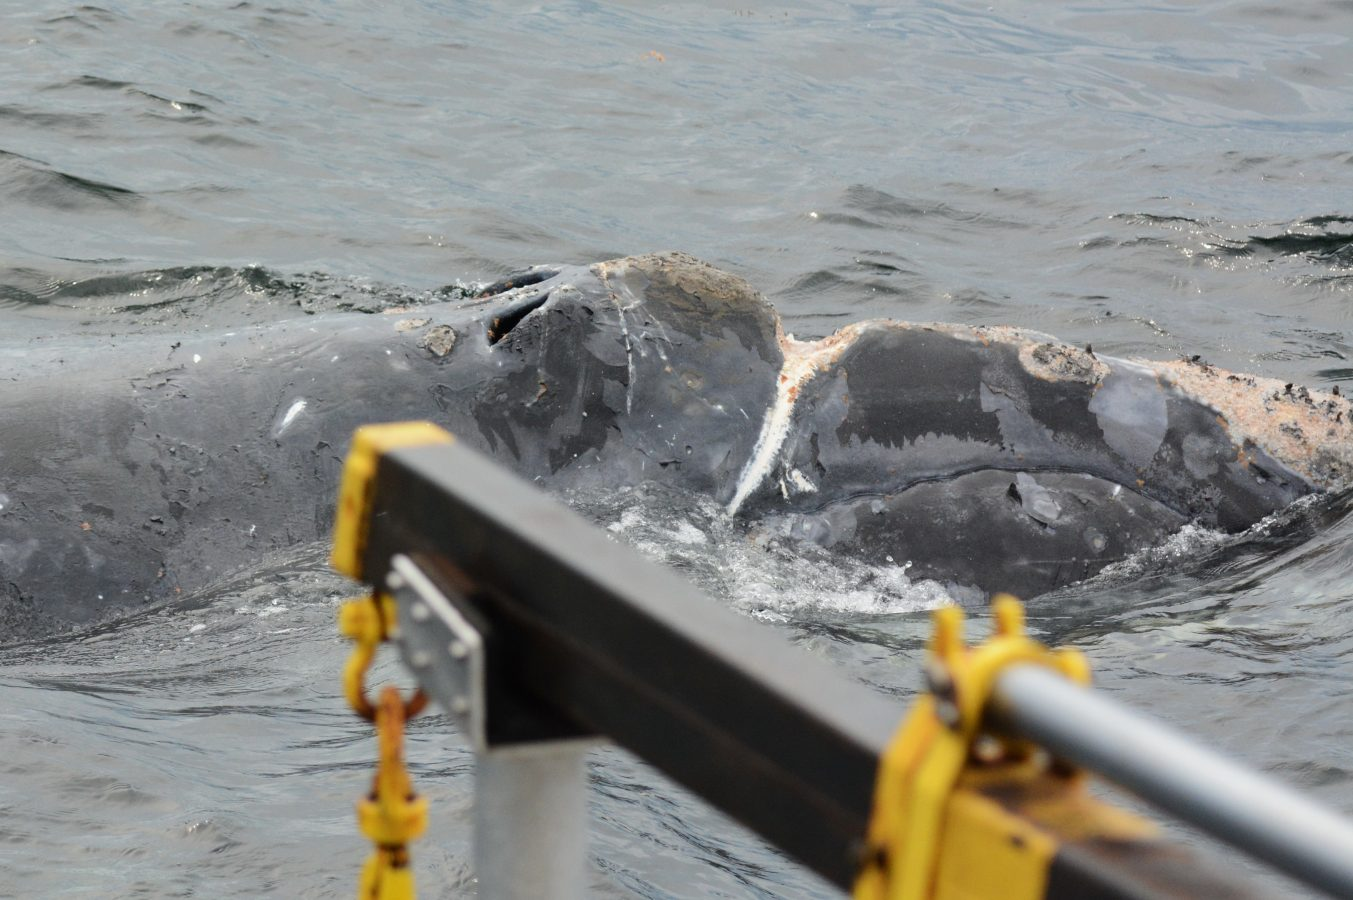 Deep wound on North Atlantic right whale #4601 from fishing gear entanglement.